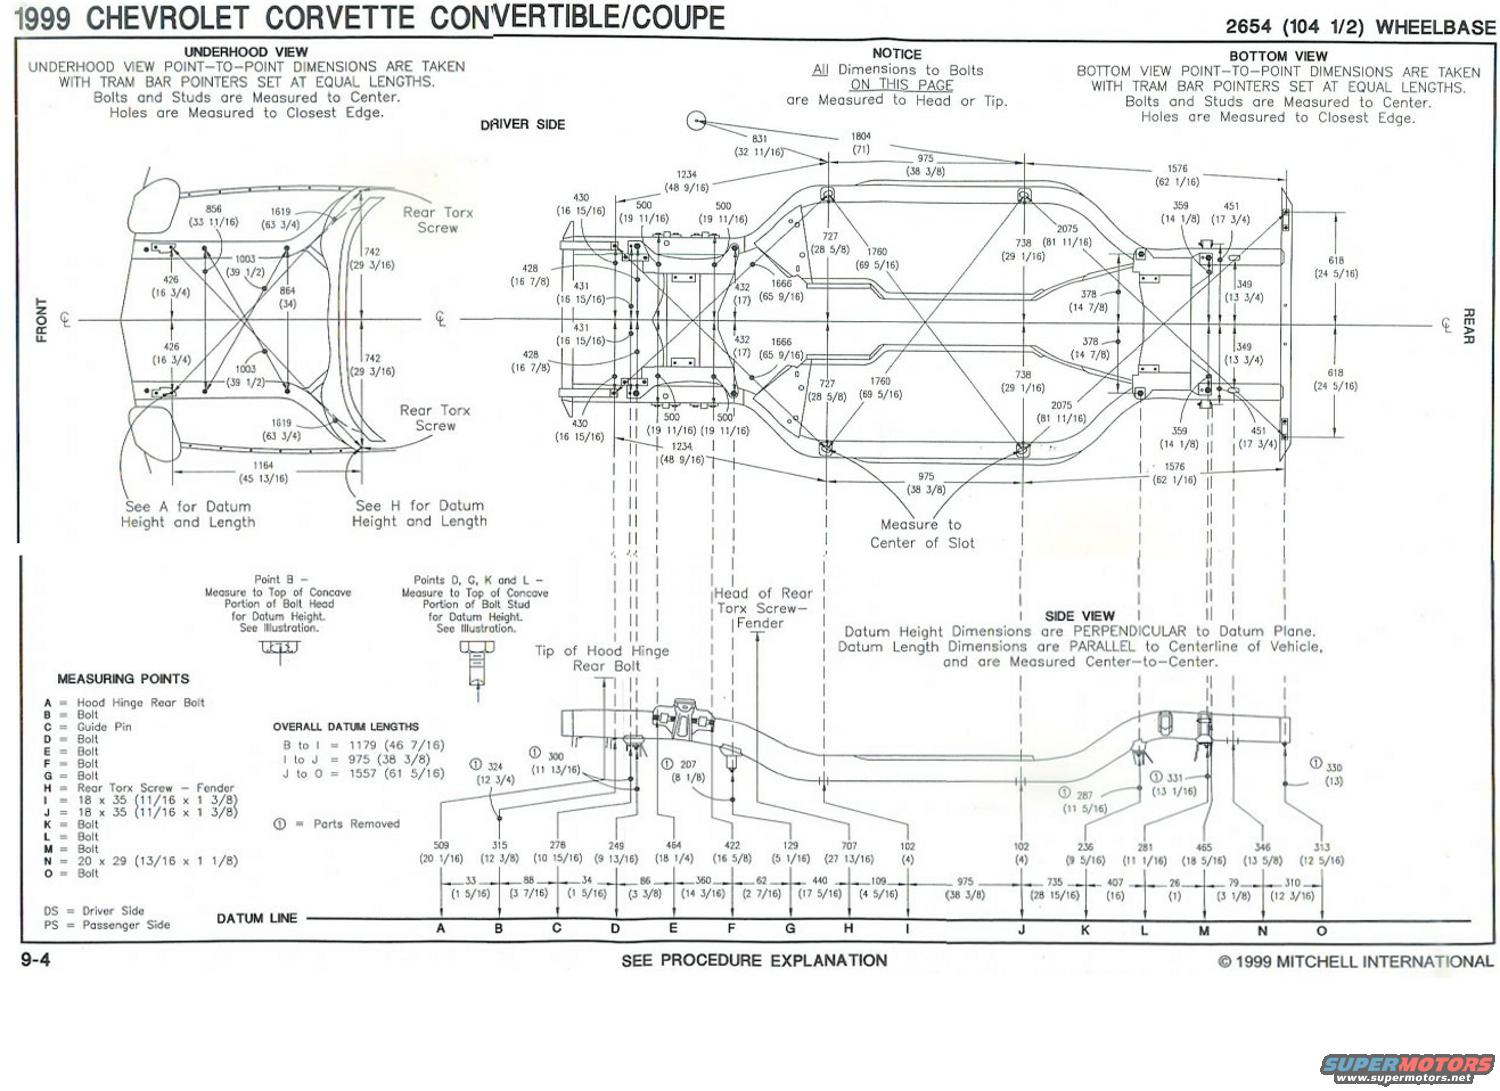 c5 framedimstitched1?resize\\\\\\\\\\\\\\\\\\\\\\\\\\\=665%2C484 c5 corvette wiring diagram & dash_cons_door_pke_seats pdf pages 2002 corvette wiring diagrams at panicattacktreatment.co